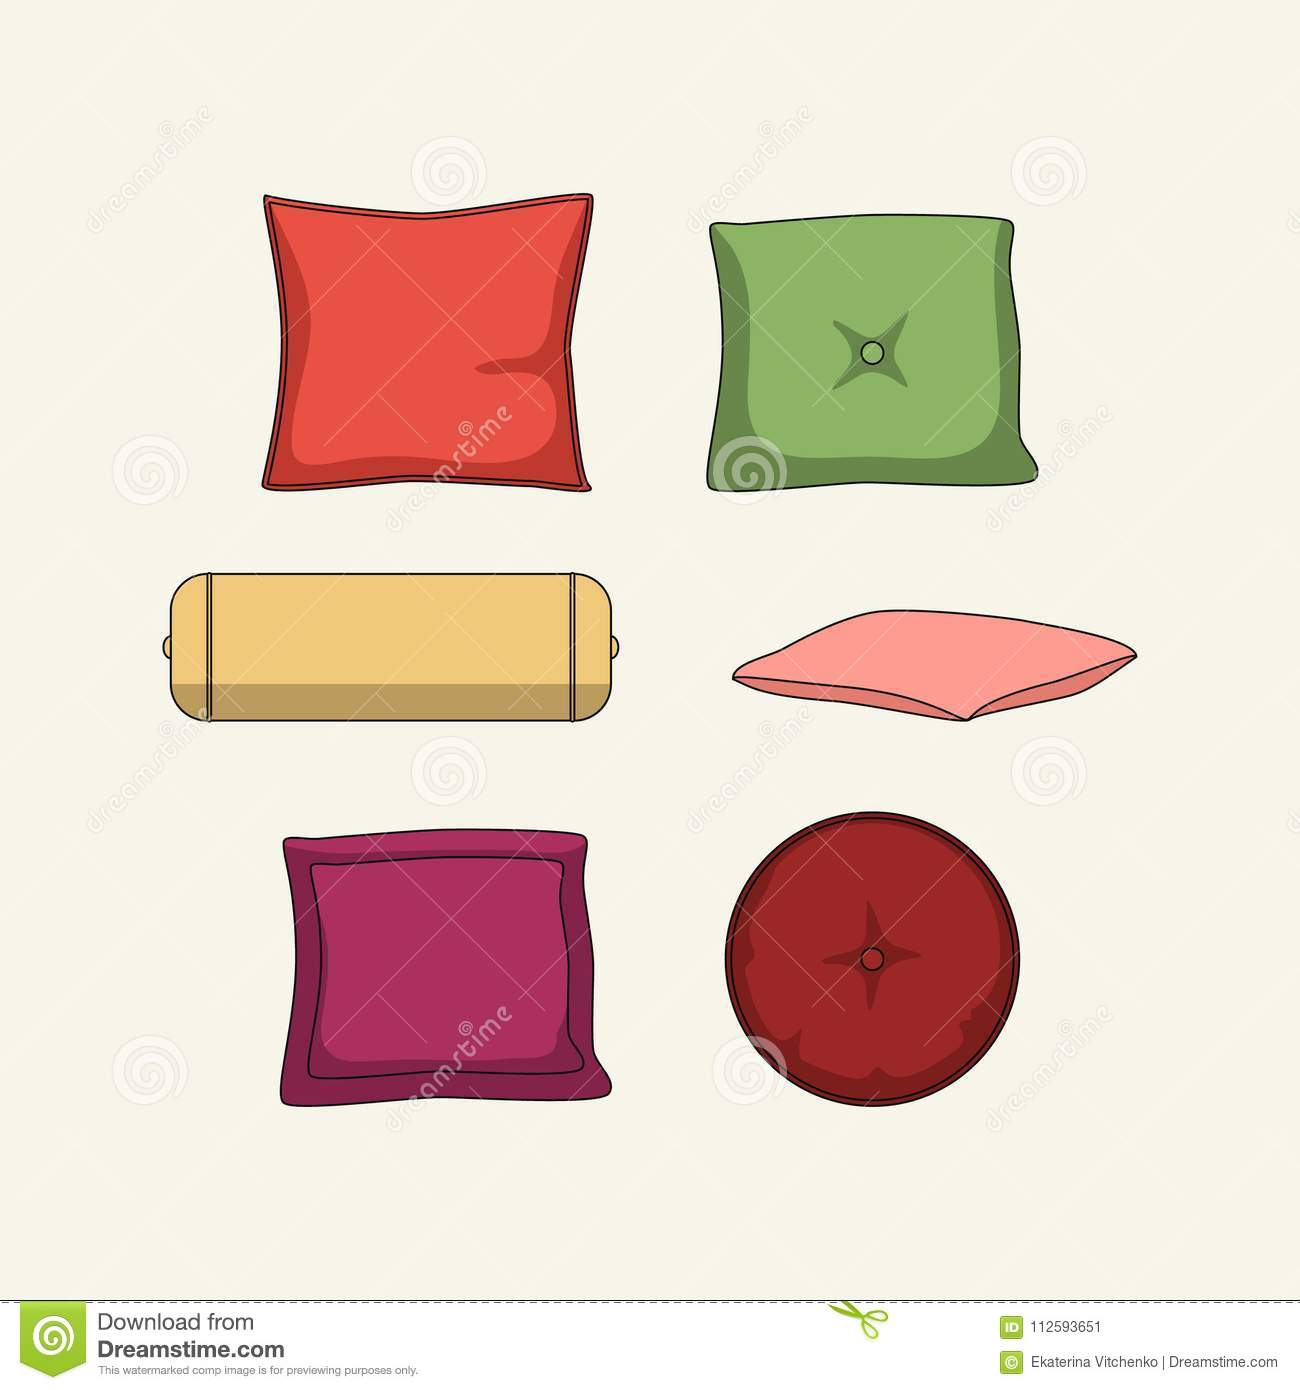 Magnificent Set Of 6 Colored Pillows For Home Stock Vector Forskolin Free Trial Chair Design Images Forskolin Free Trialorg